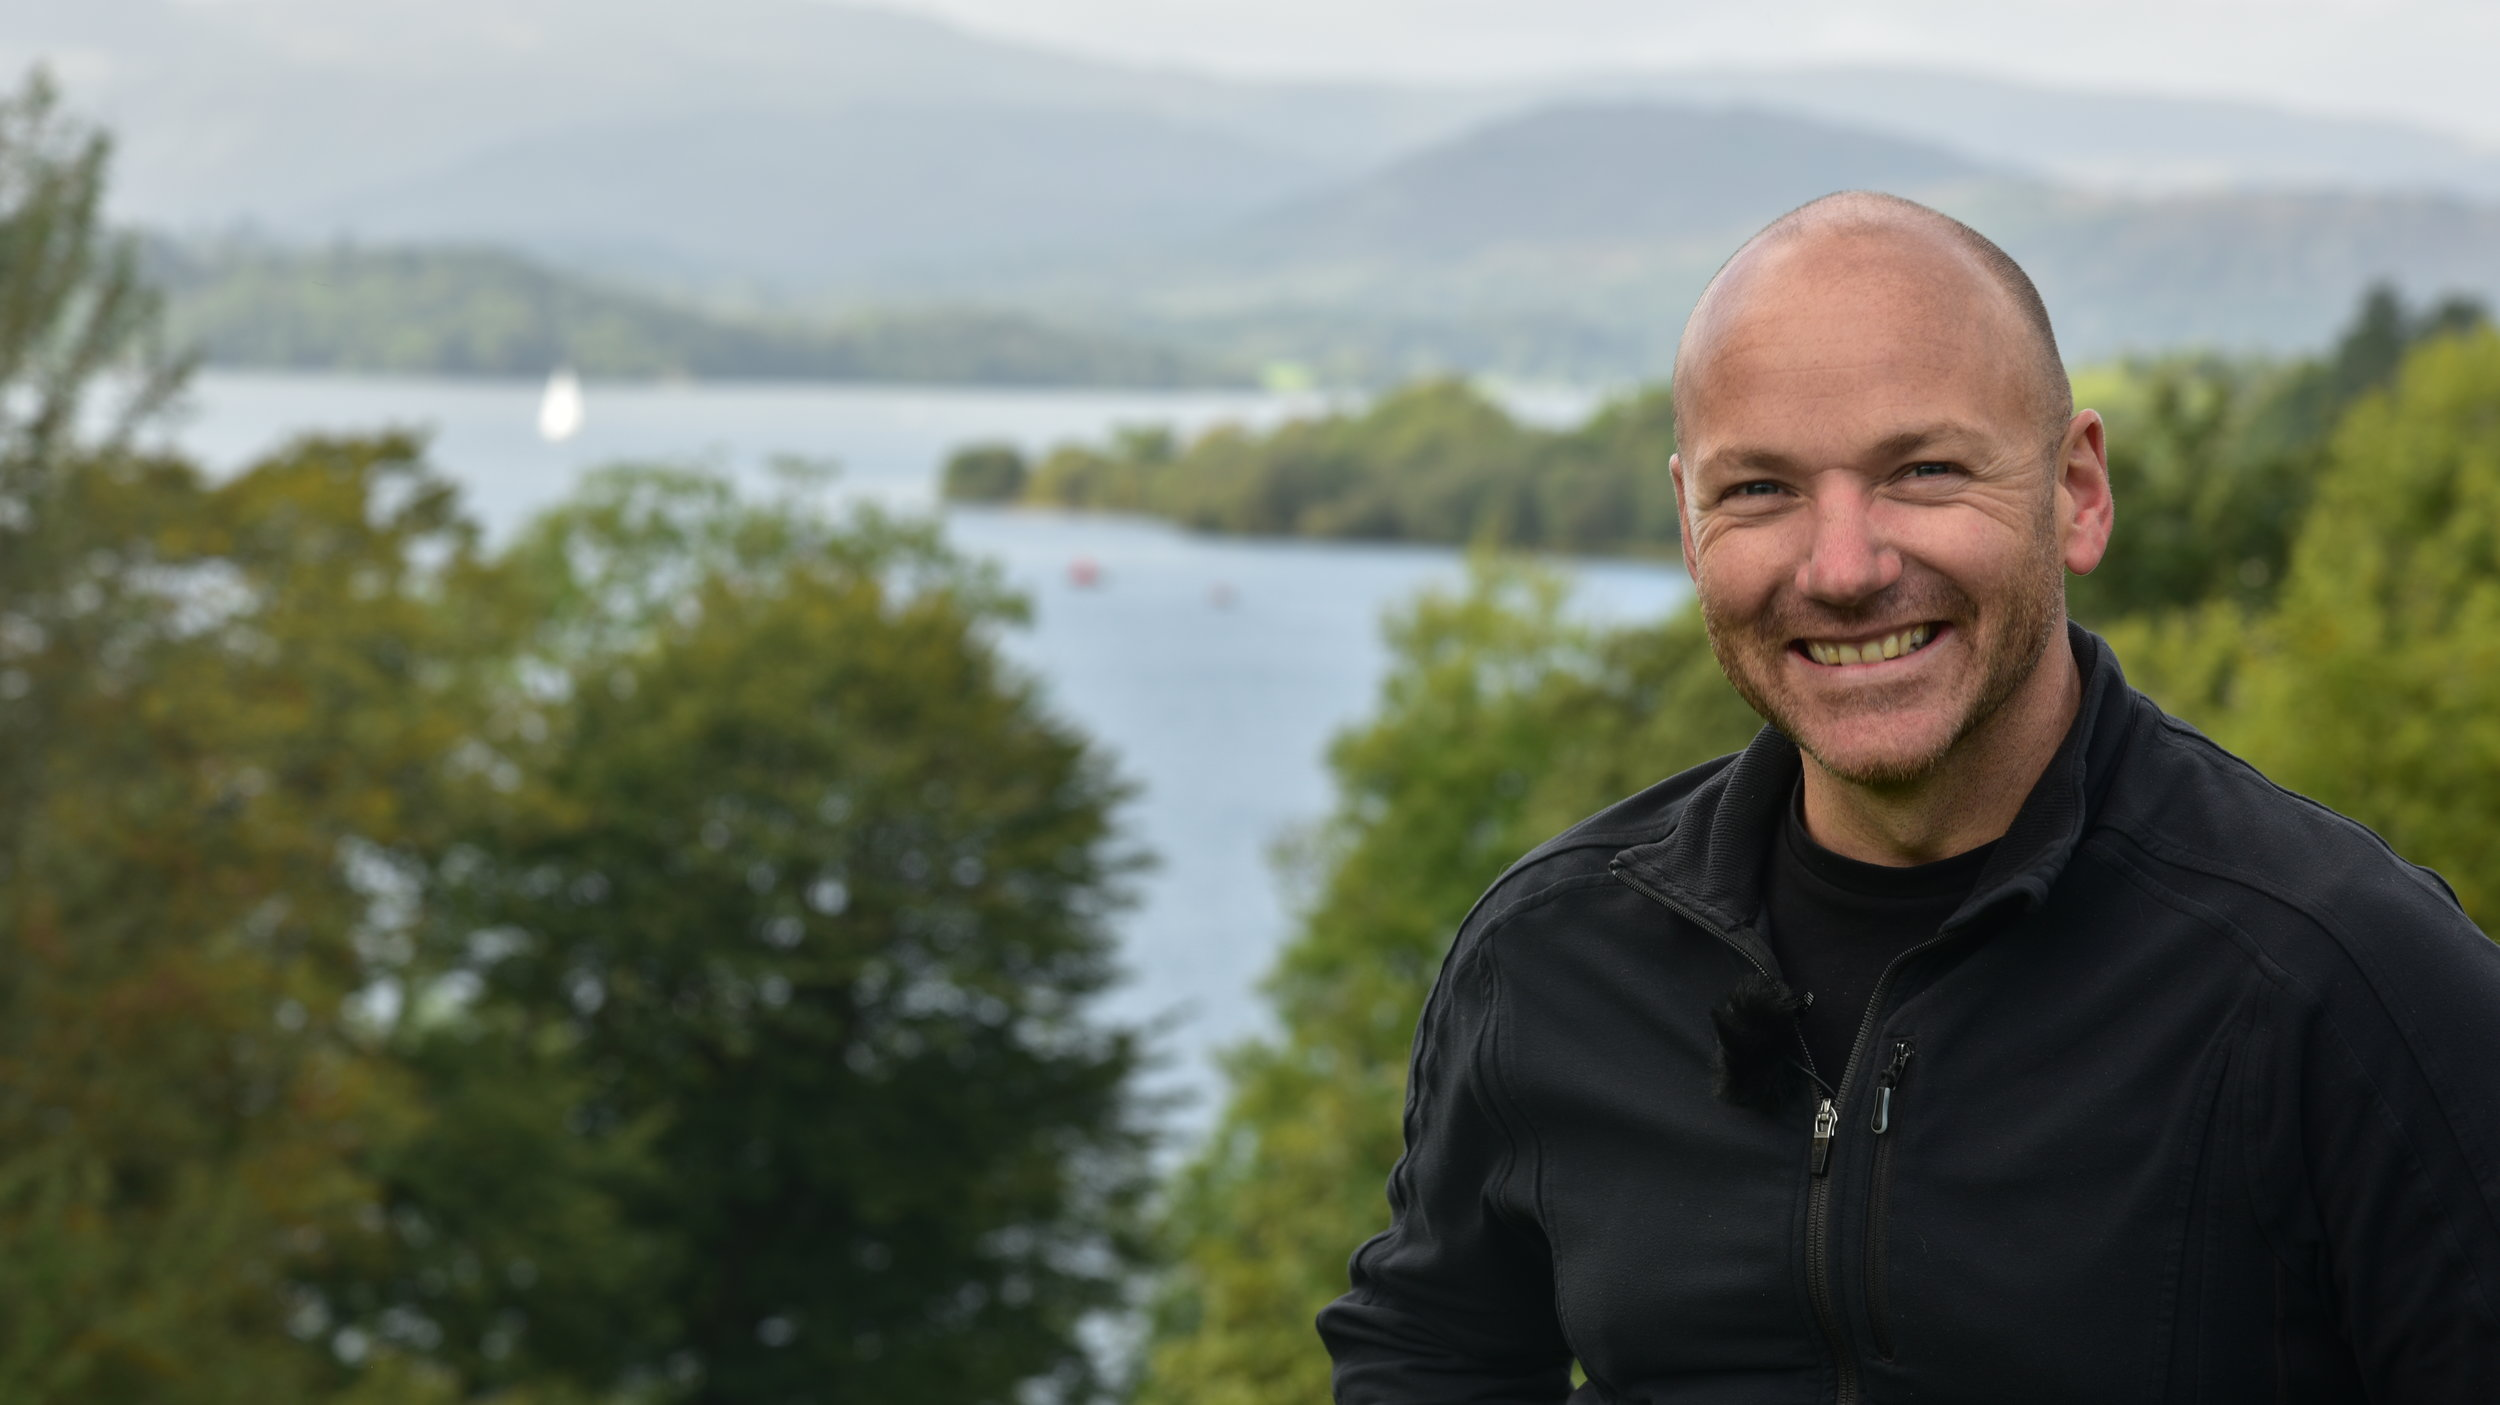 Scotty Johnson - Behavioural Coach, Speaker, Author and Founder of Explore What Matters